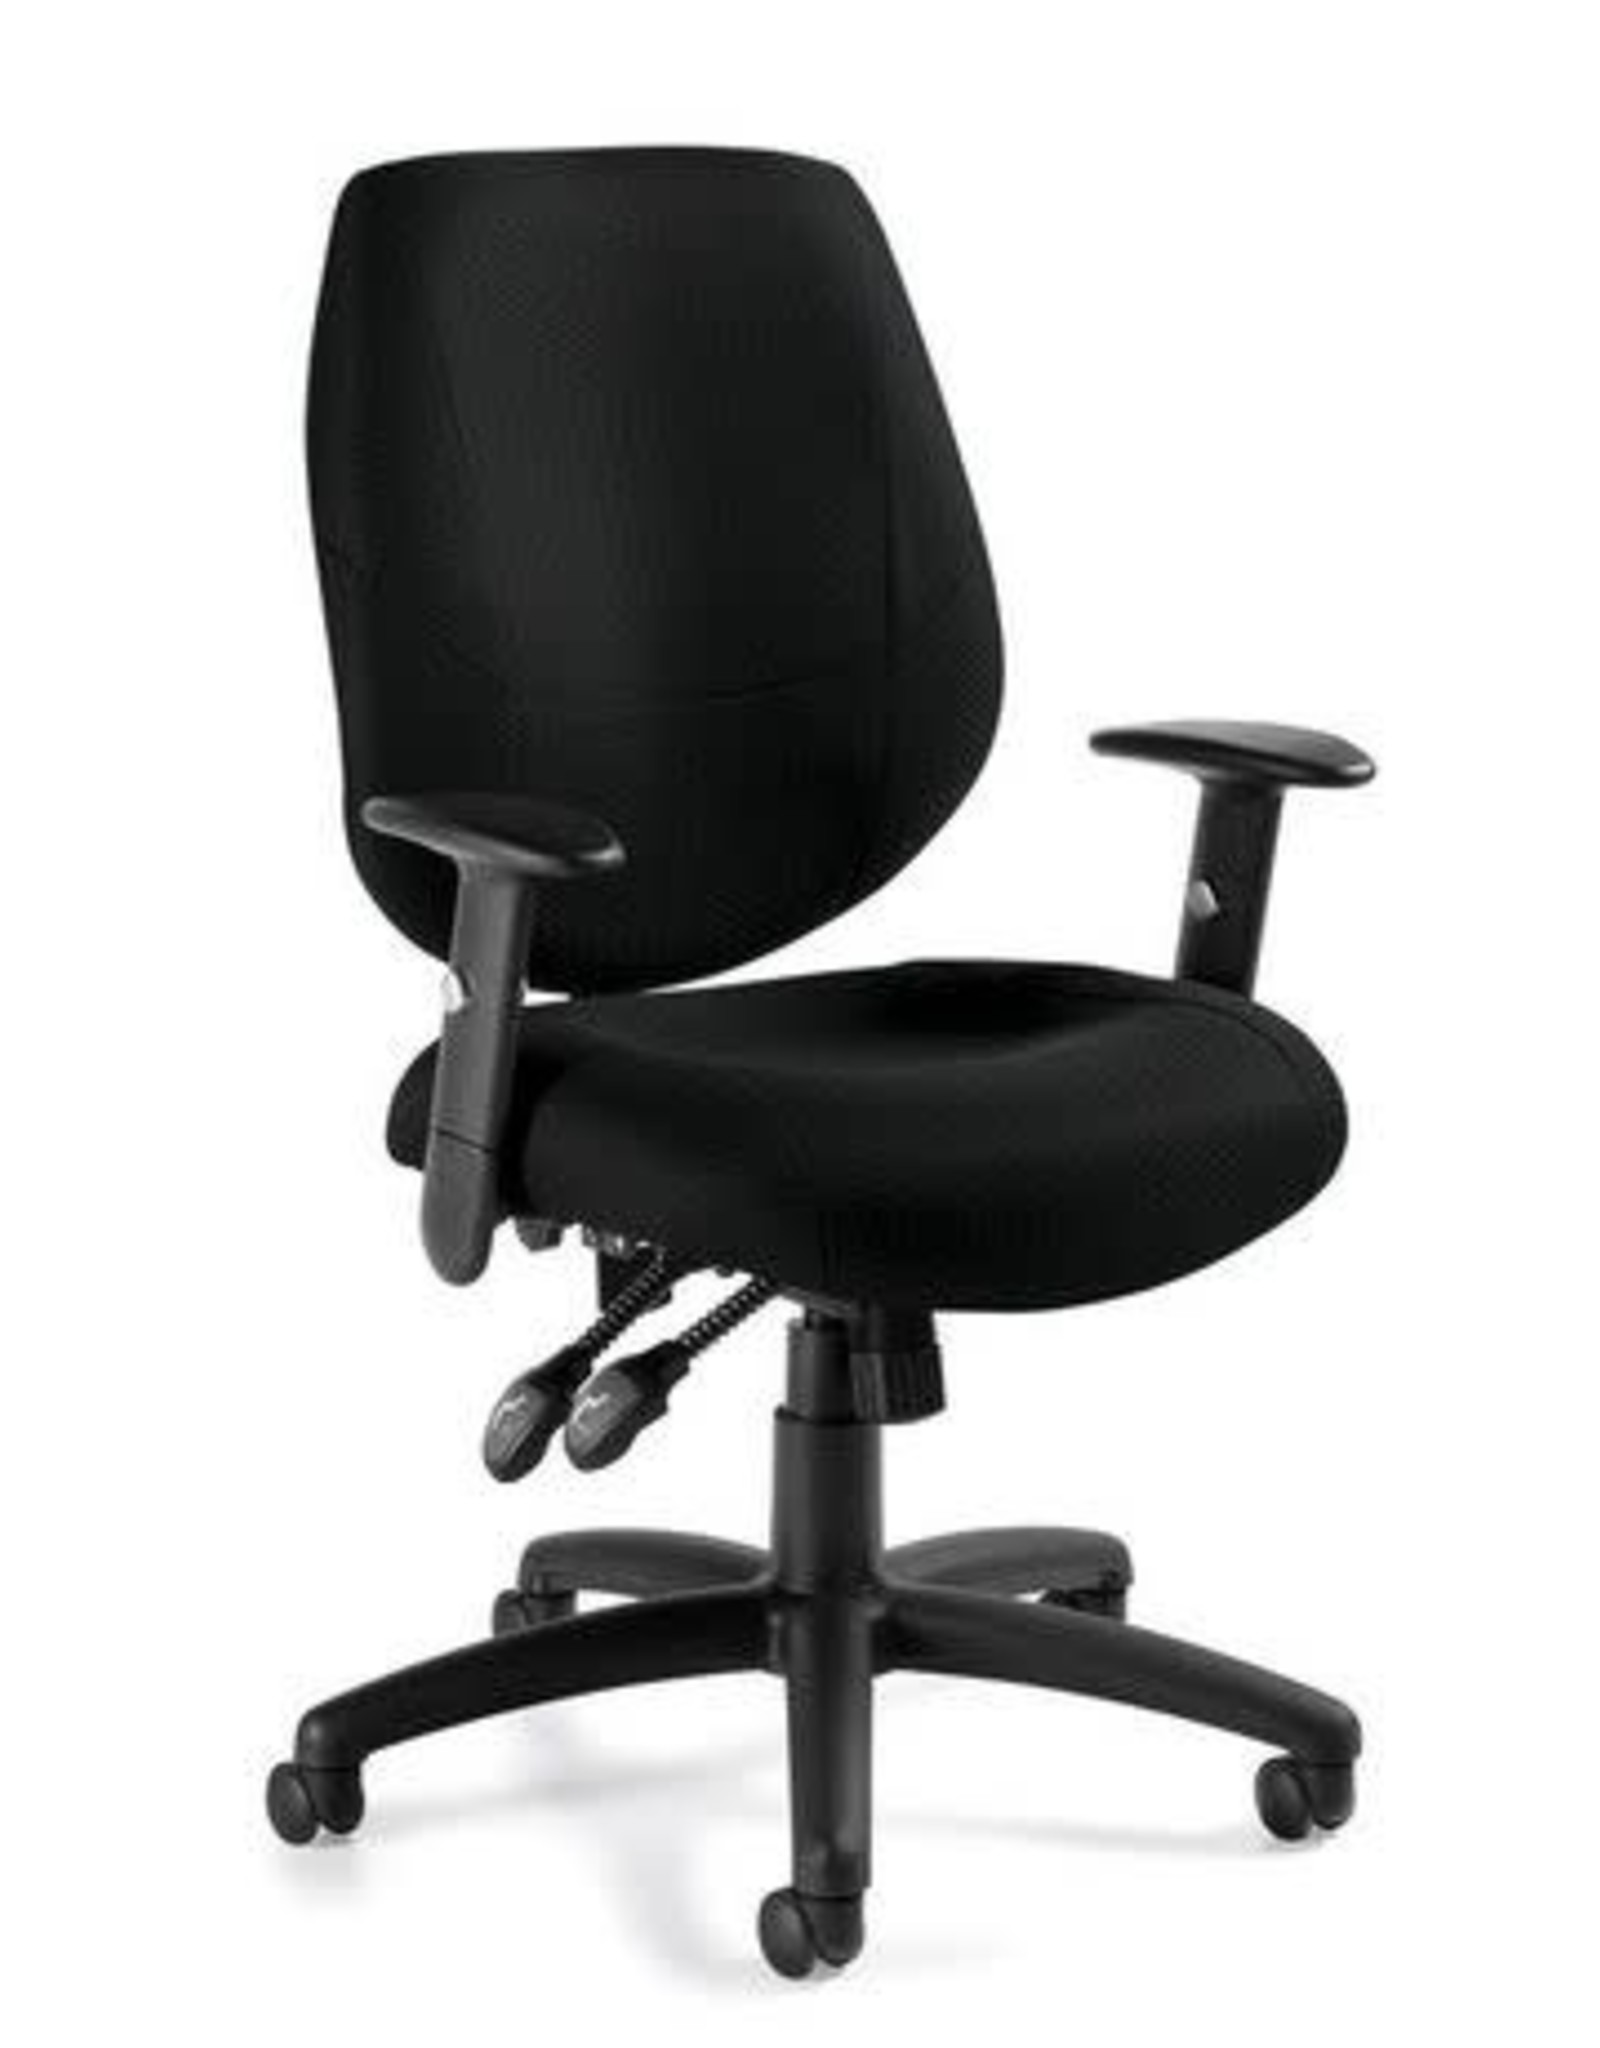 Offices to Go Chair - Office to Go - Operator Six 31 Medium Back, Quilt Black